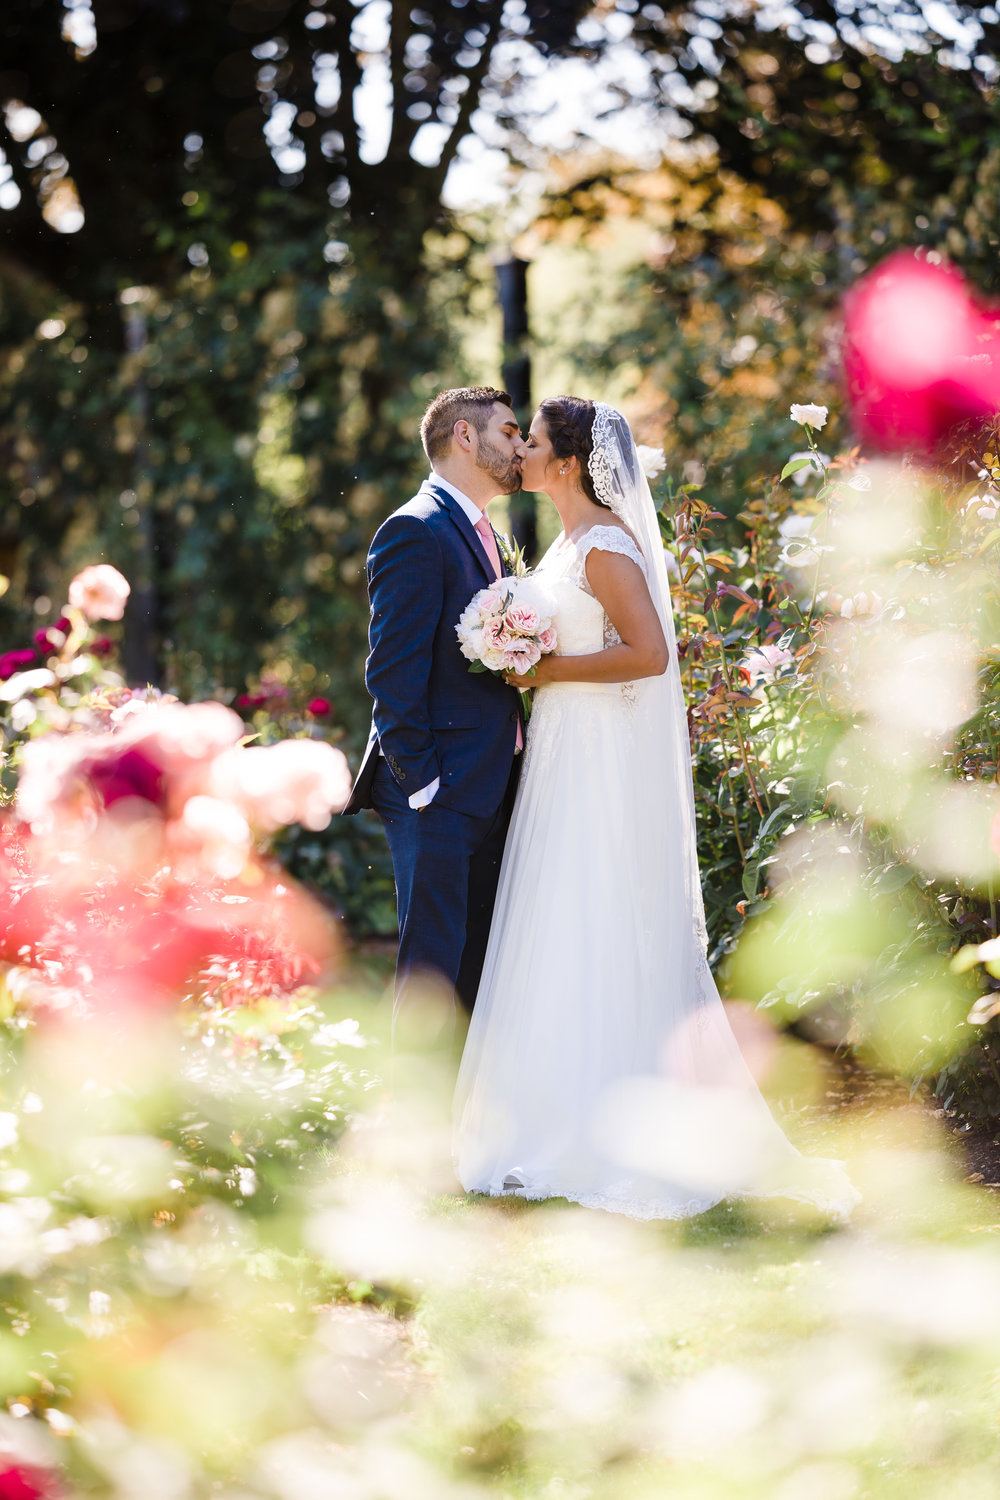 Perfectly Planned Moments Eugene Oregon Wedding Planner Downtown Couple Portraits.jpg